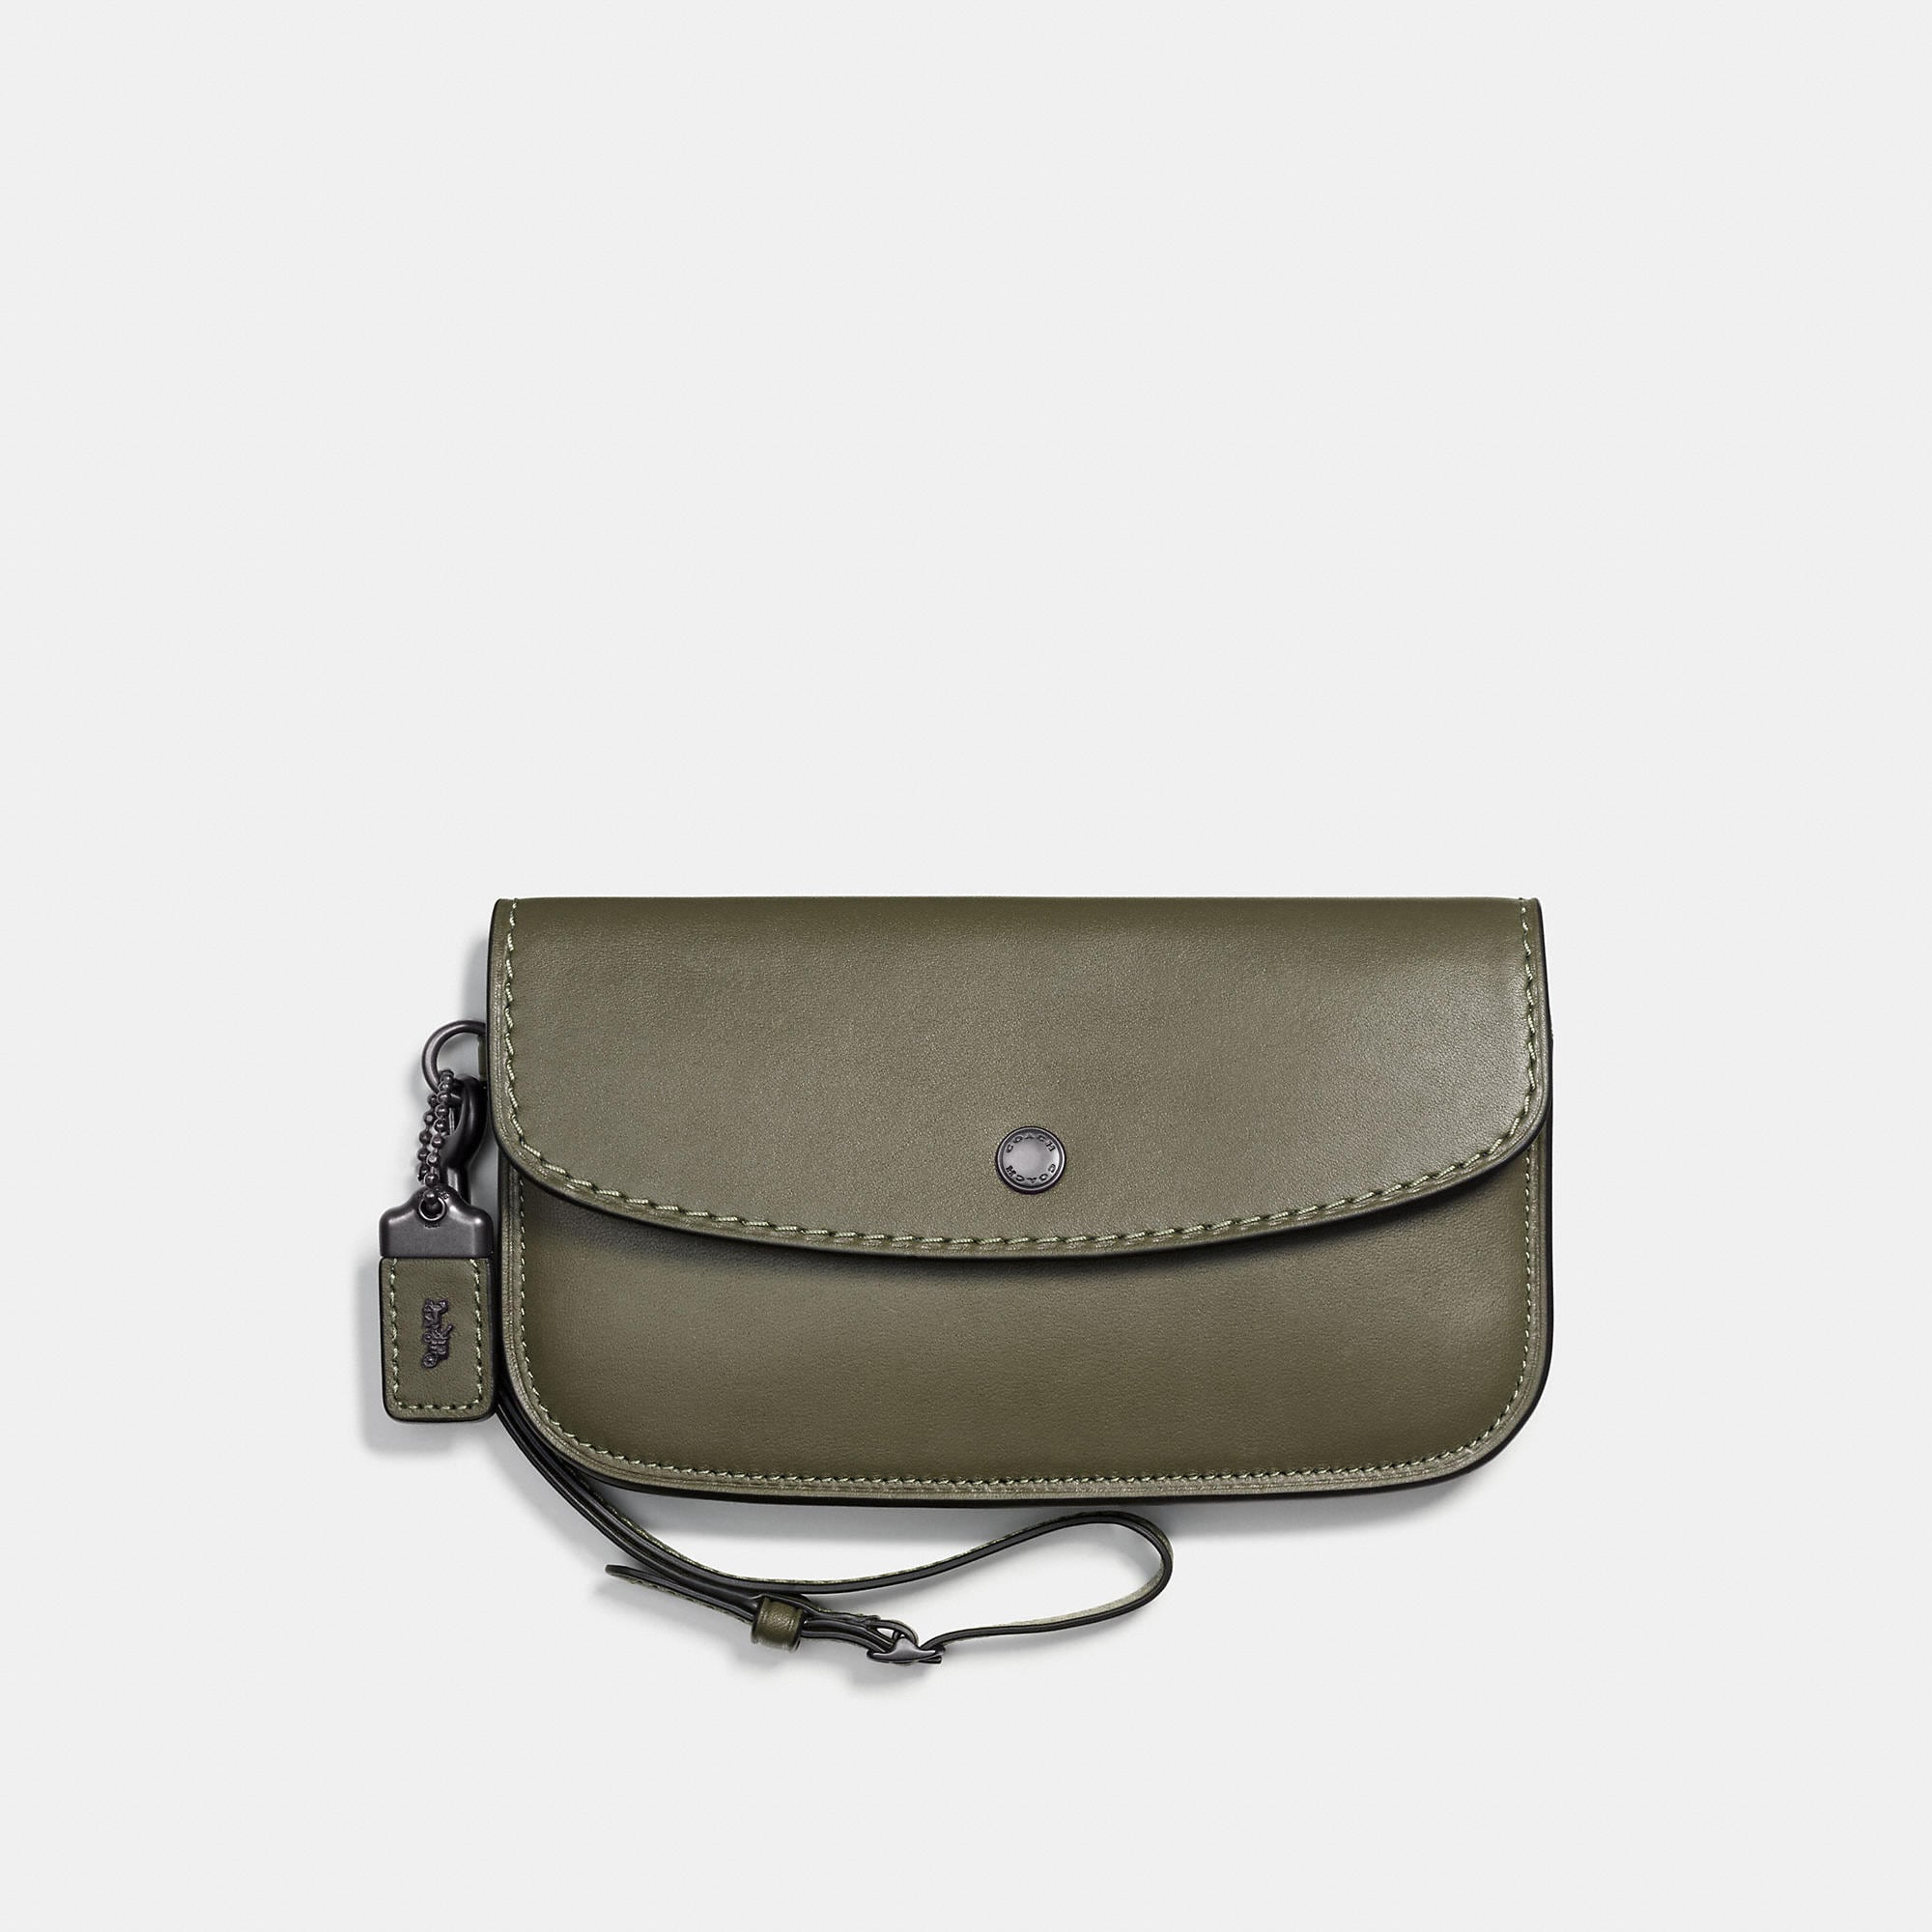 Coach 1941 Clutch In Glovetanned Leather